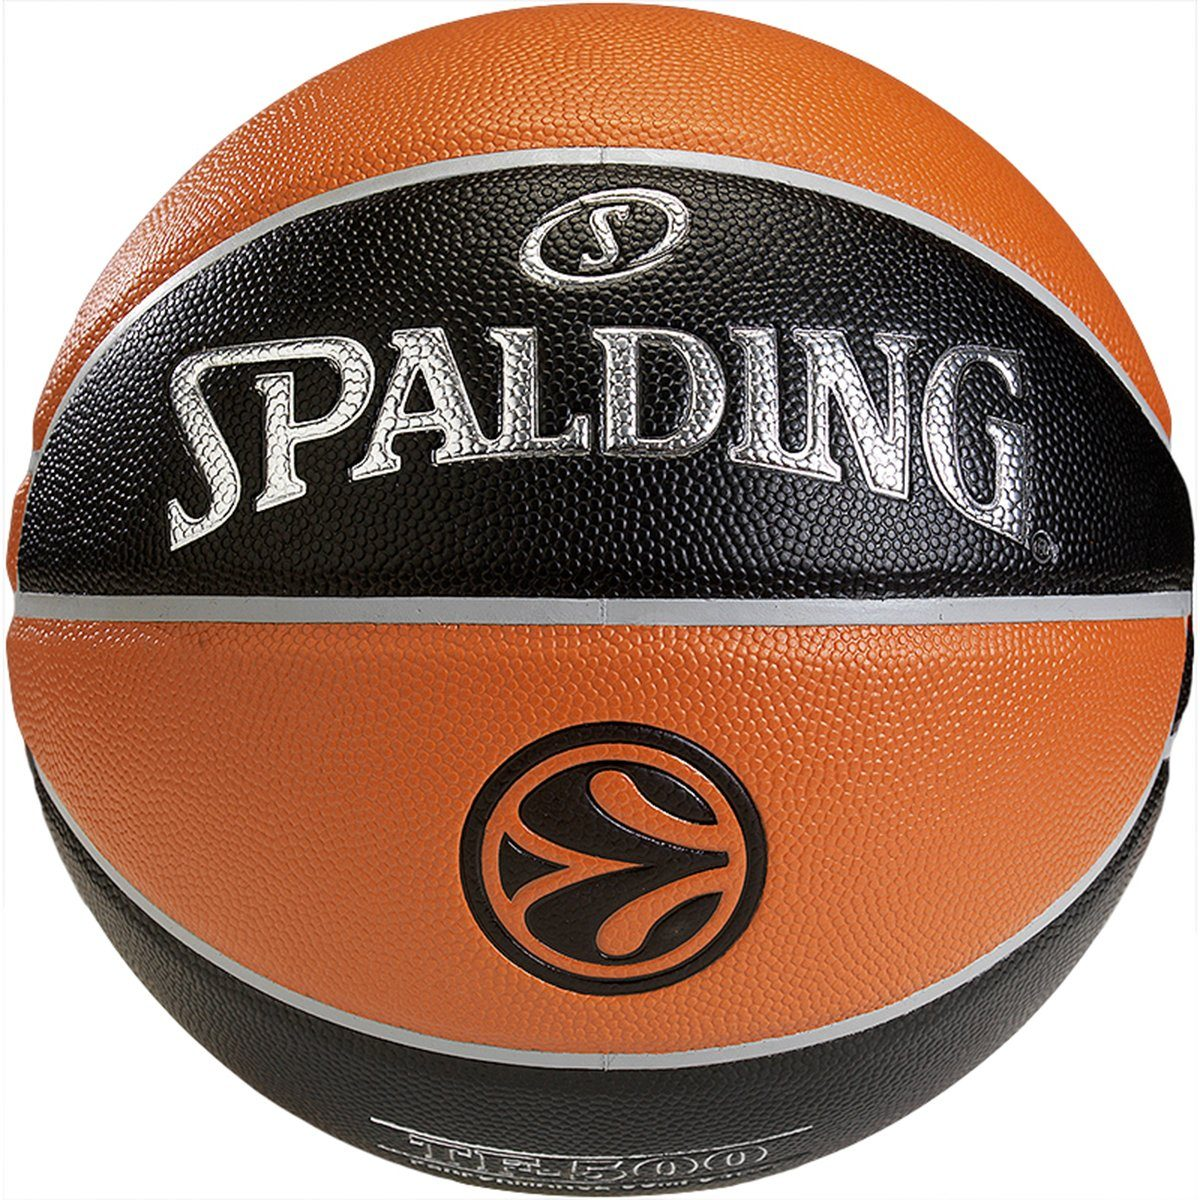 SPALDING Euroleague TF500 Basketball